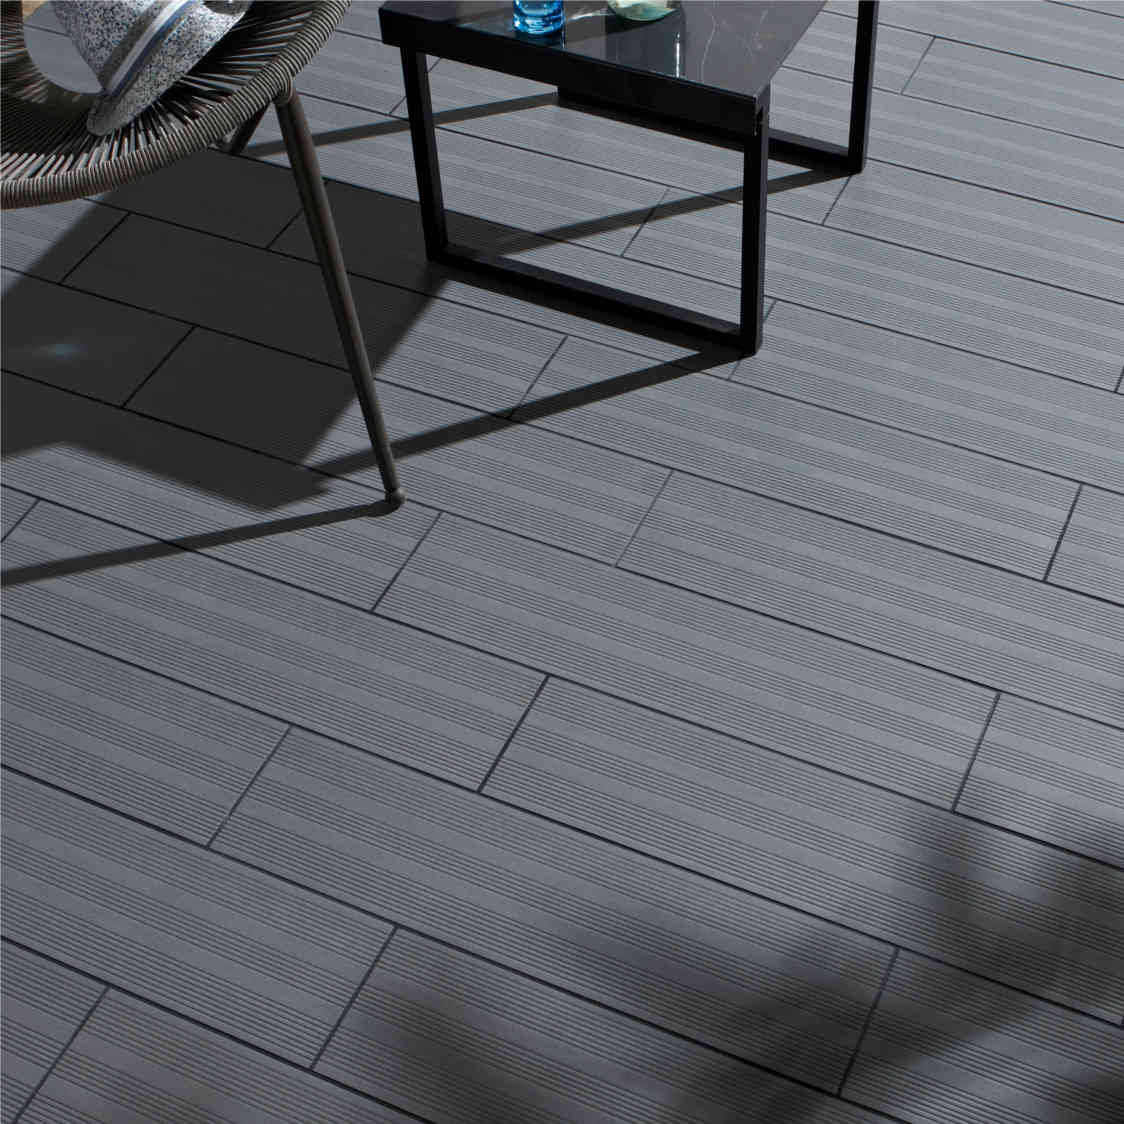 Amazing formes et dimensions with carrelage 60x60 leroy merlin for Carrelage 60x60 pas cher